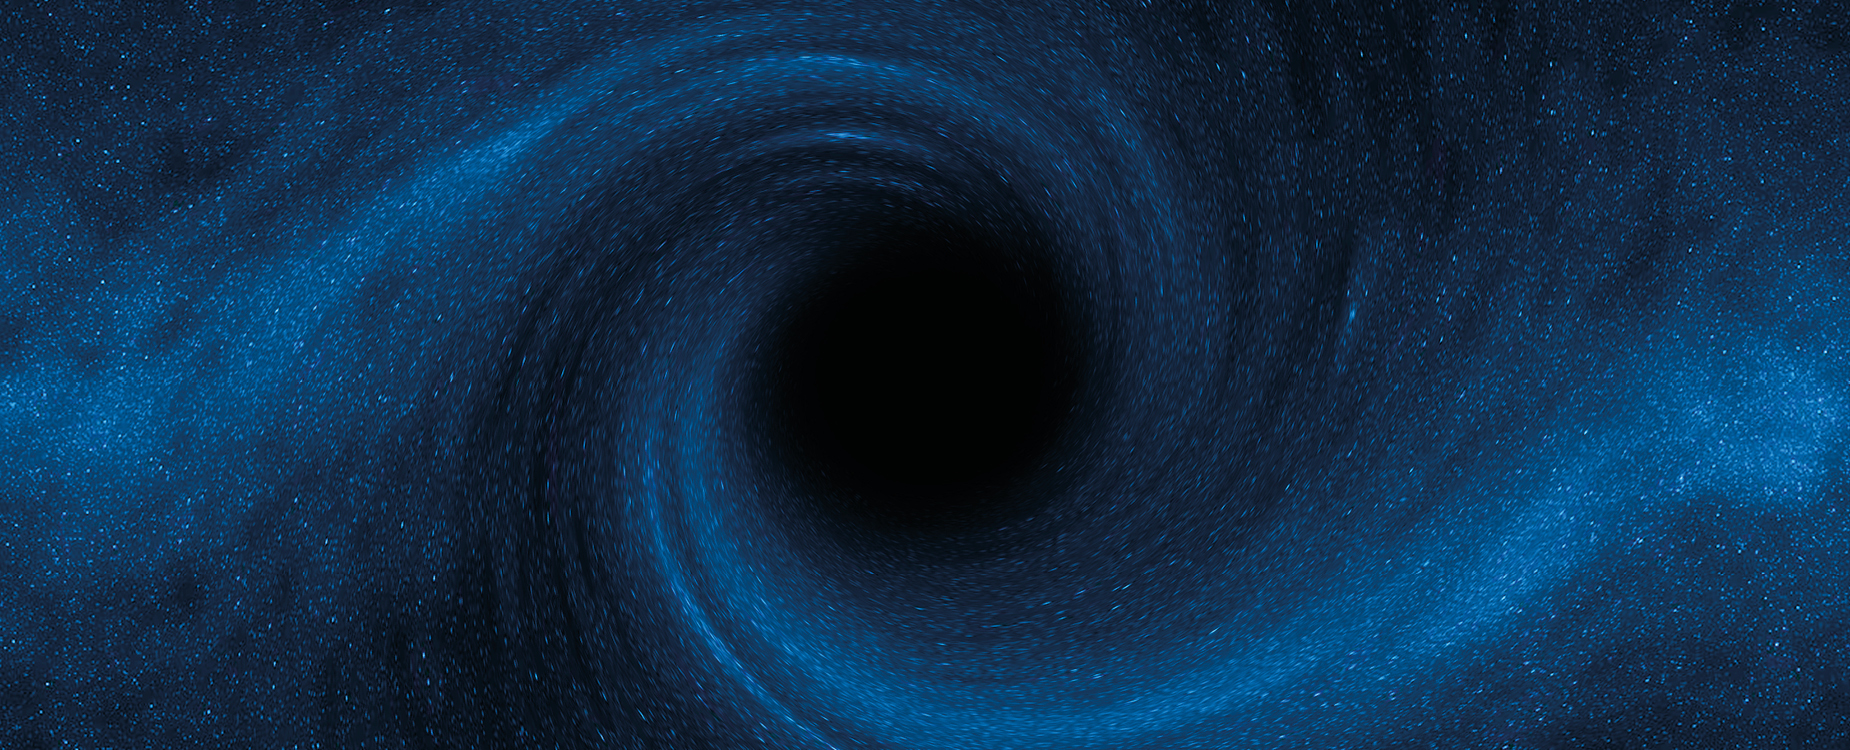 The light from stars bending around a black hole